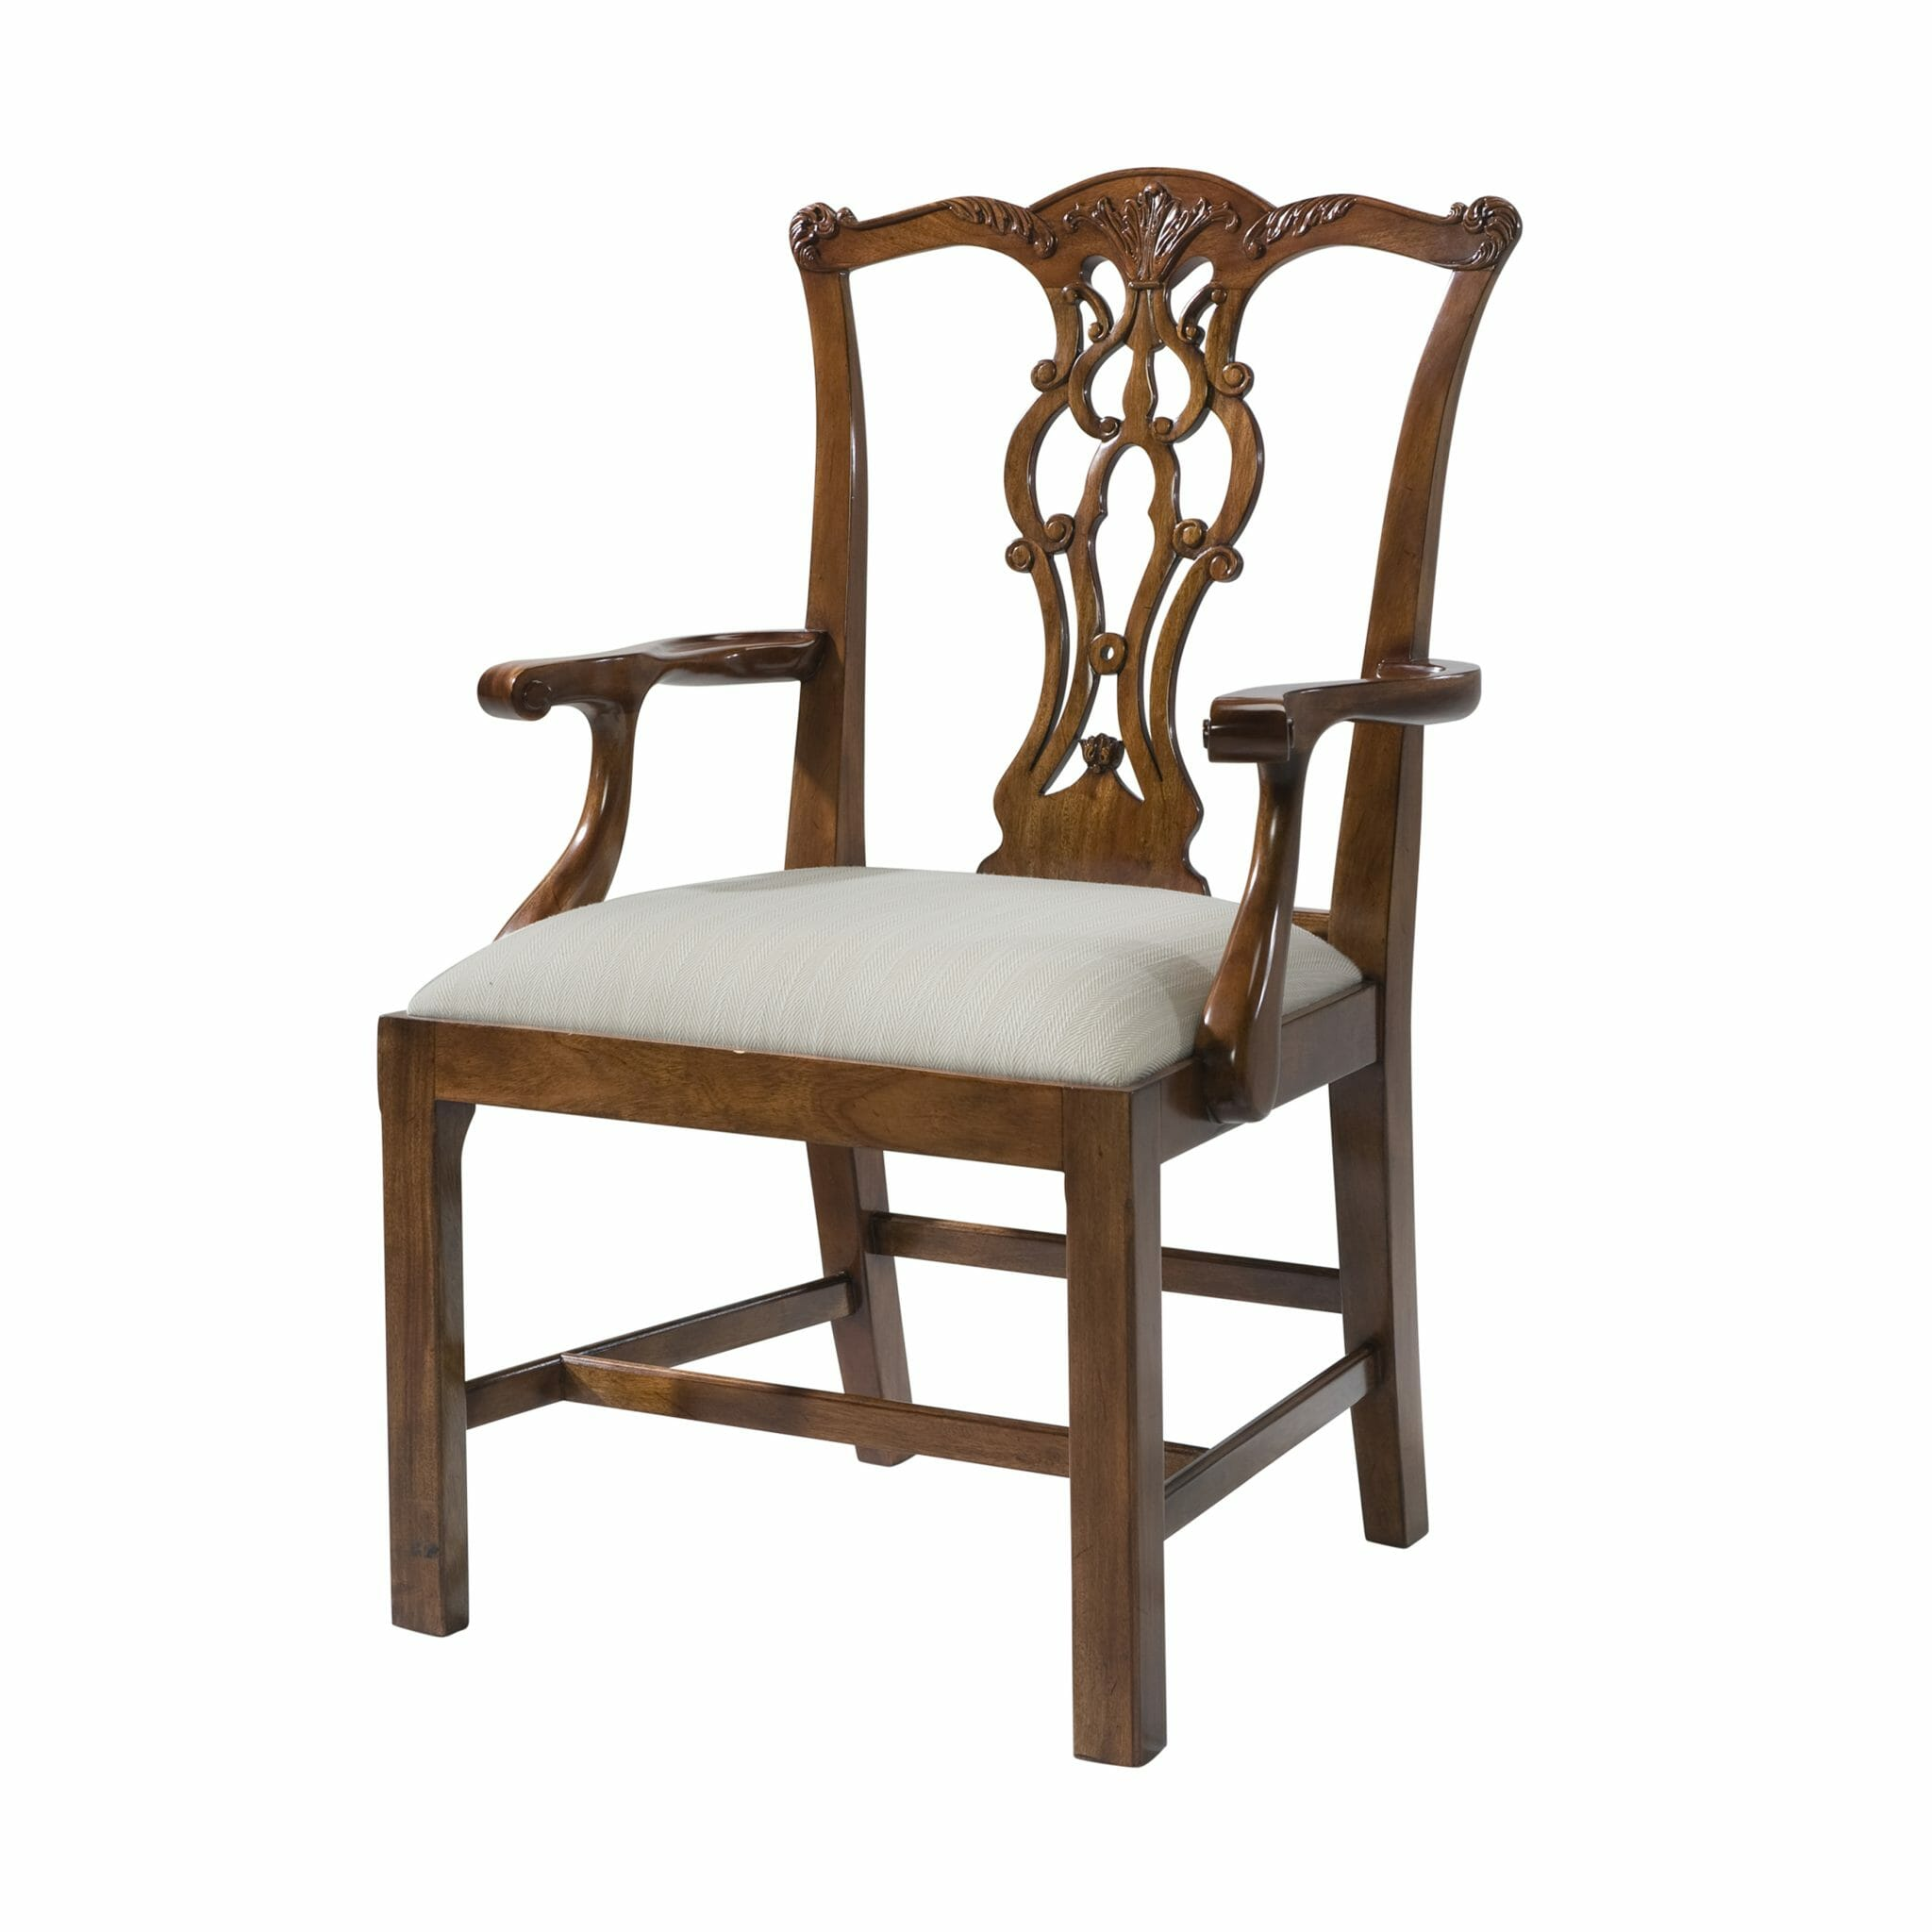 Reproduction Chippendale Armchair  sc 1 st  Caledonian Inc & Reproduction Chippendale Armchair|English Antiques - Caledonian Inc ...